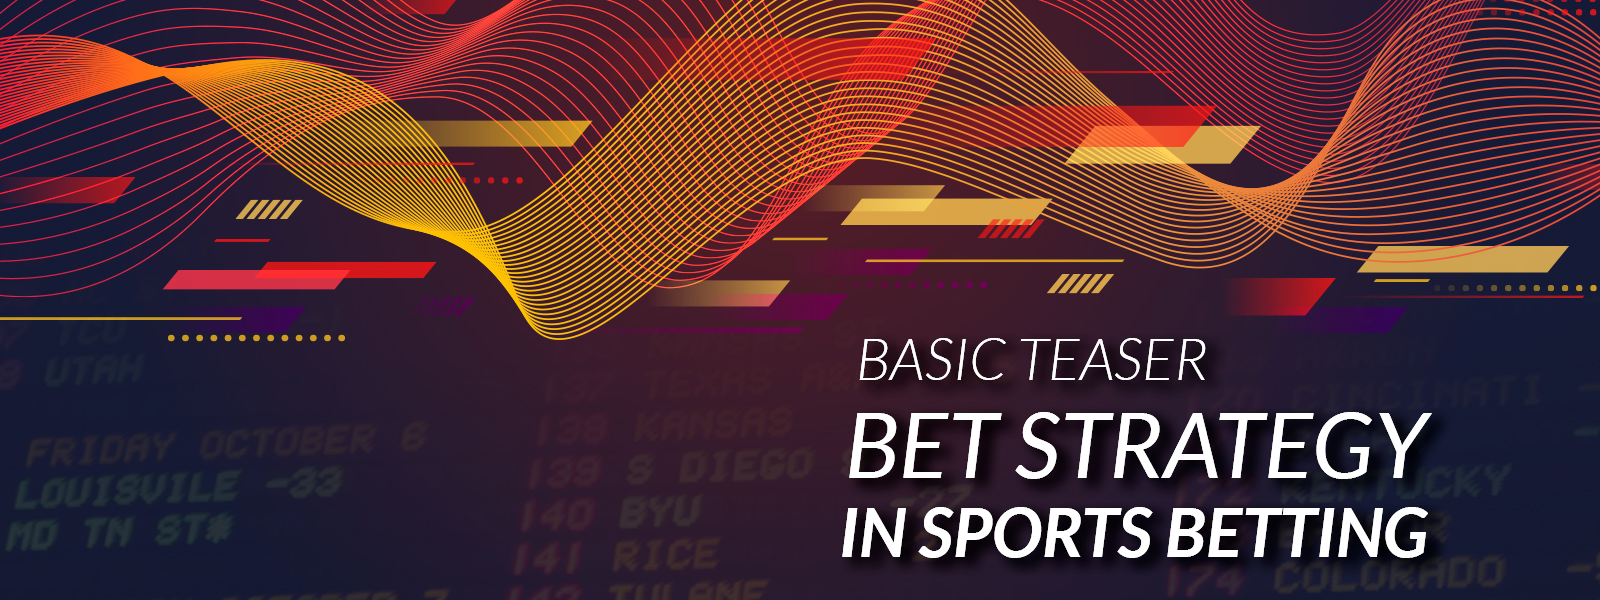 Basic Teaser Bet Strategy in Sports Betting